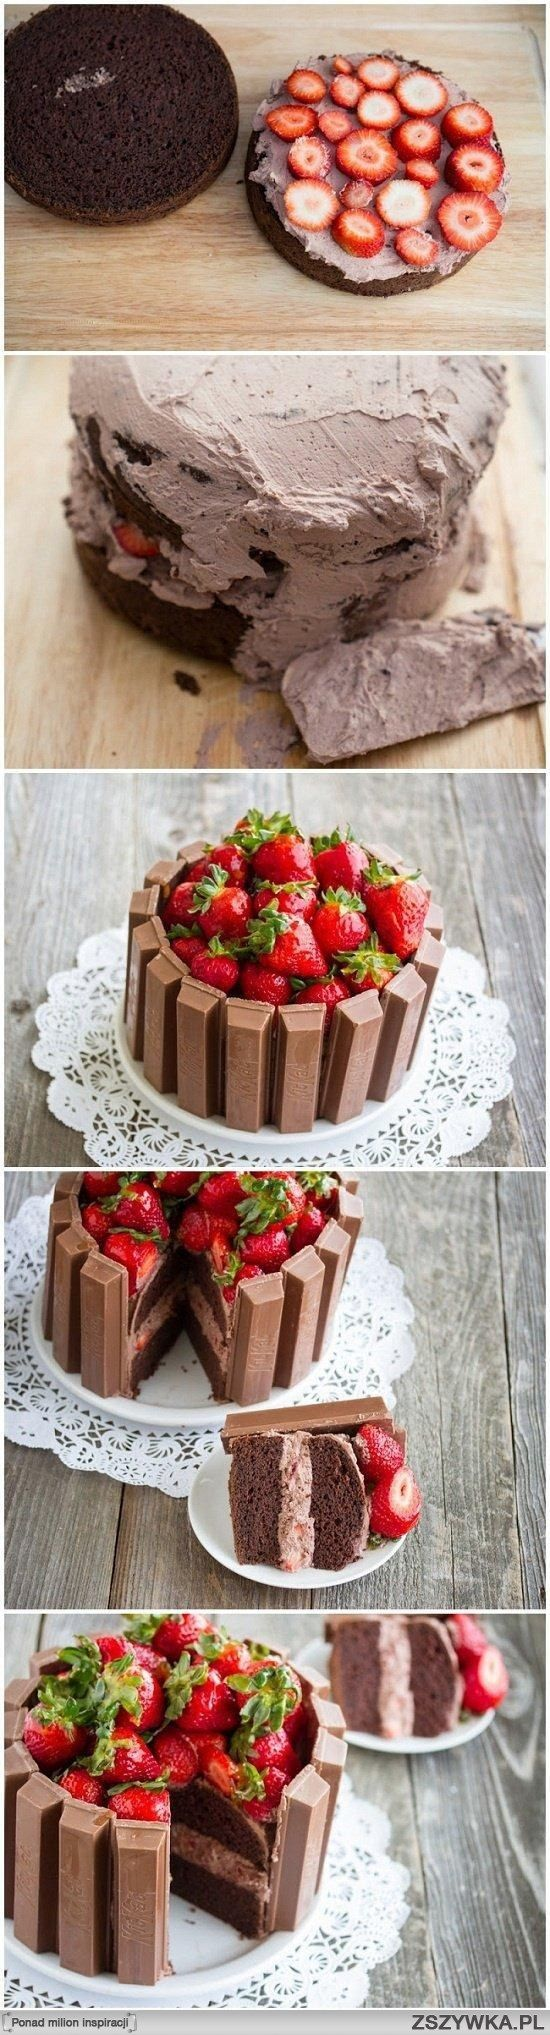 Strawberries, chocolate, and kit kats? Oh God, i need to do this!